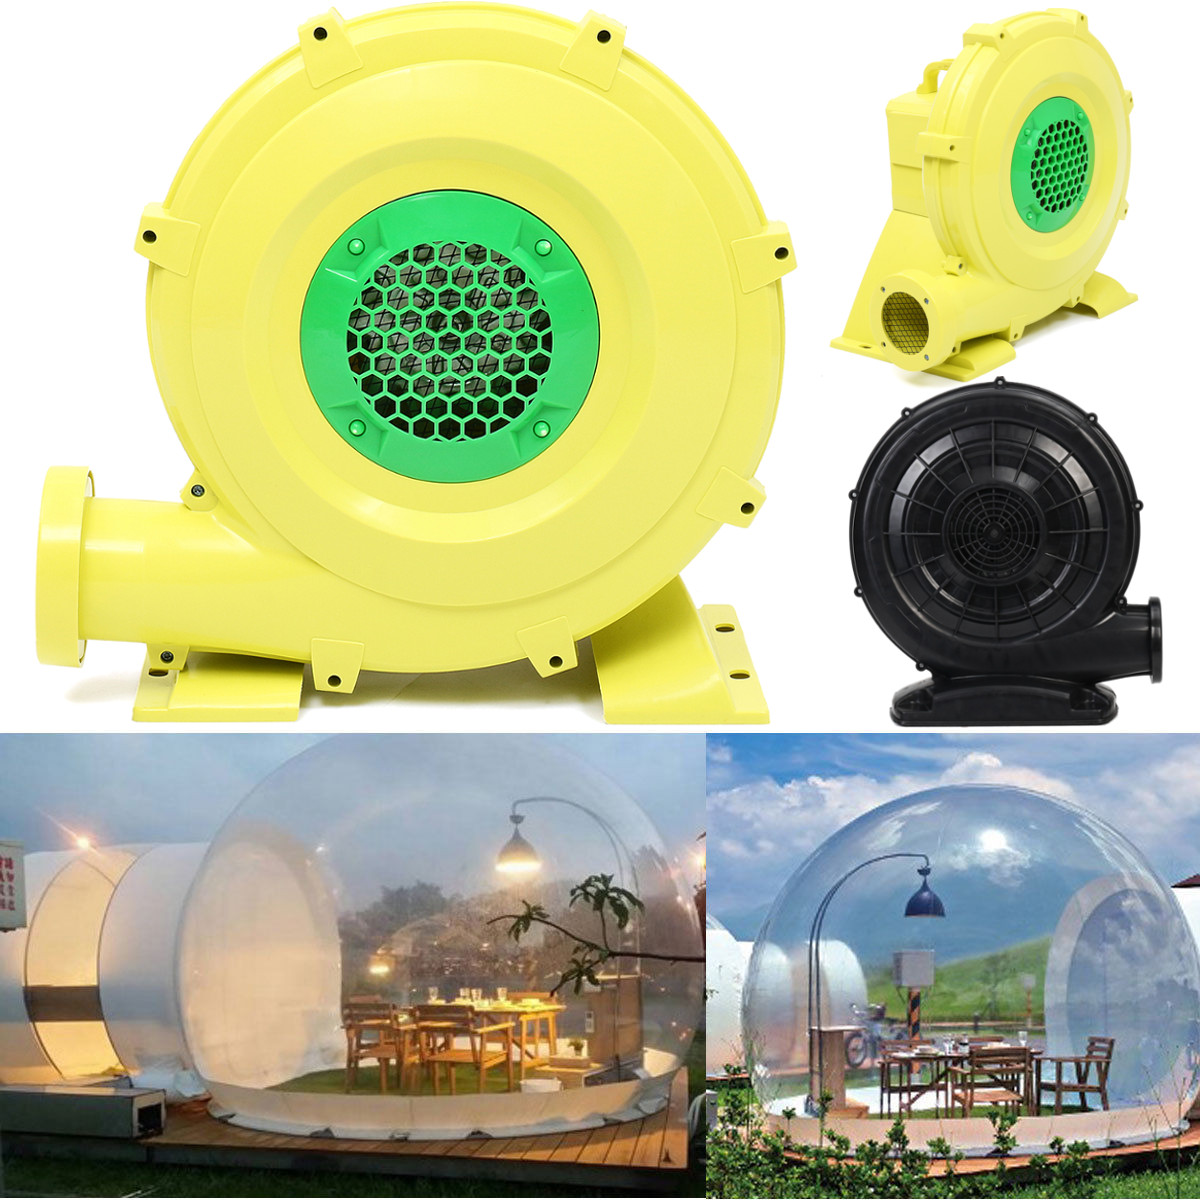 110V/220V Outdoor Camping Inflatable Bubble Tent Pump Large DIY House Dome Camping Cabin Lodge Air Tent Electric Pump110V/220V Outdoor Camping Inflatable Bubble Tent Pump Large DIY House Dome Camping Cabin Lodge Air Tent Electric Pump